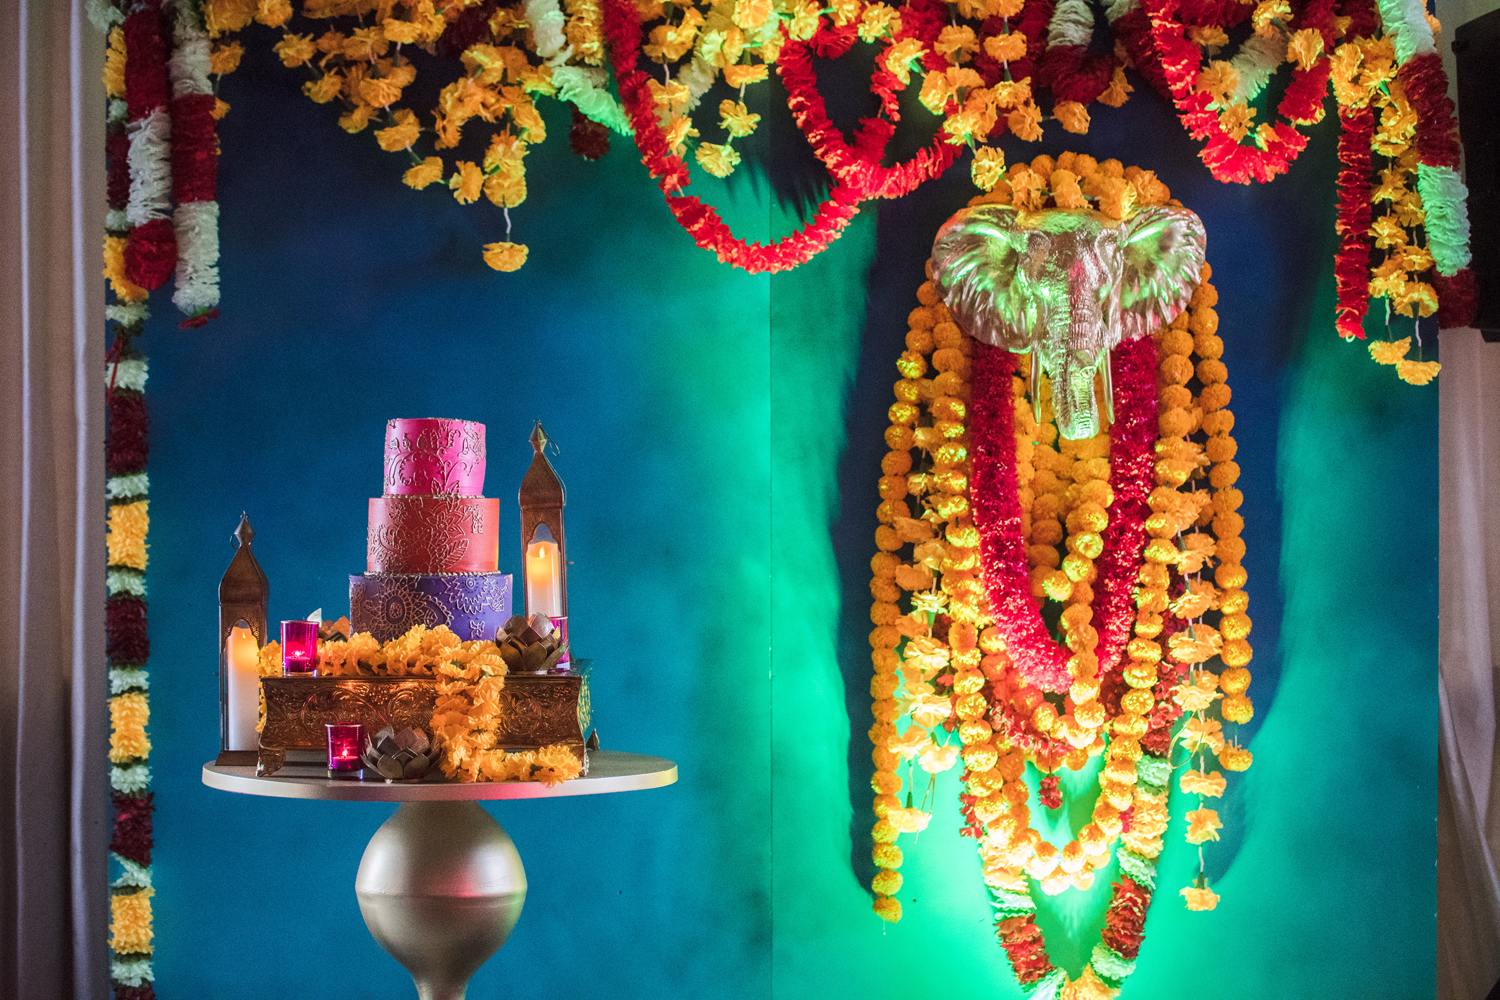 Moroccan Inspired Baby Shower Party amazing floral backdrop with cake.jpg